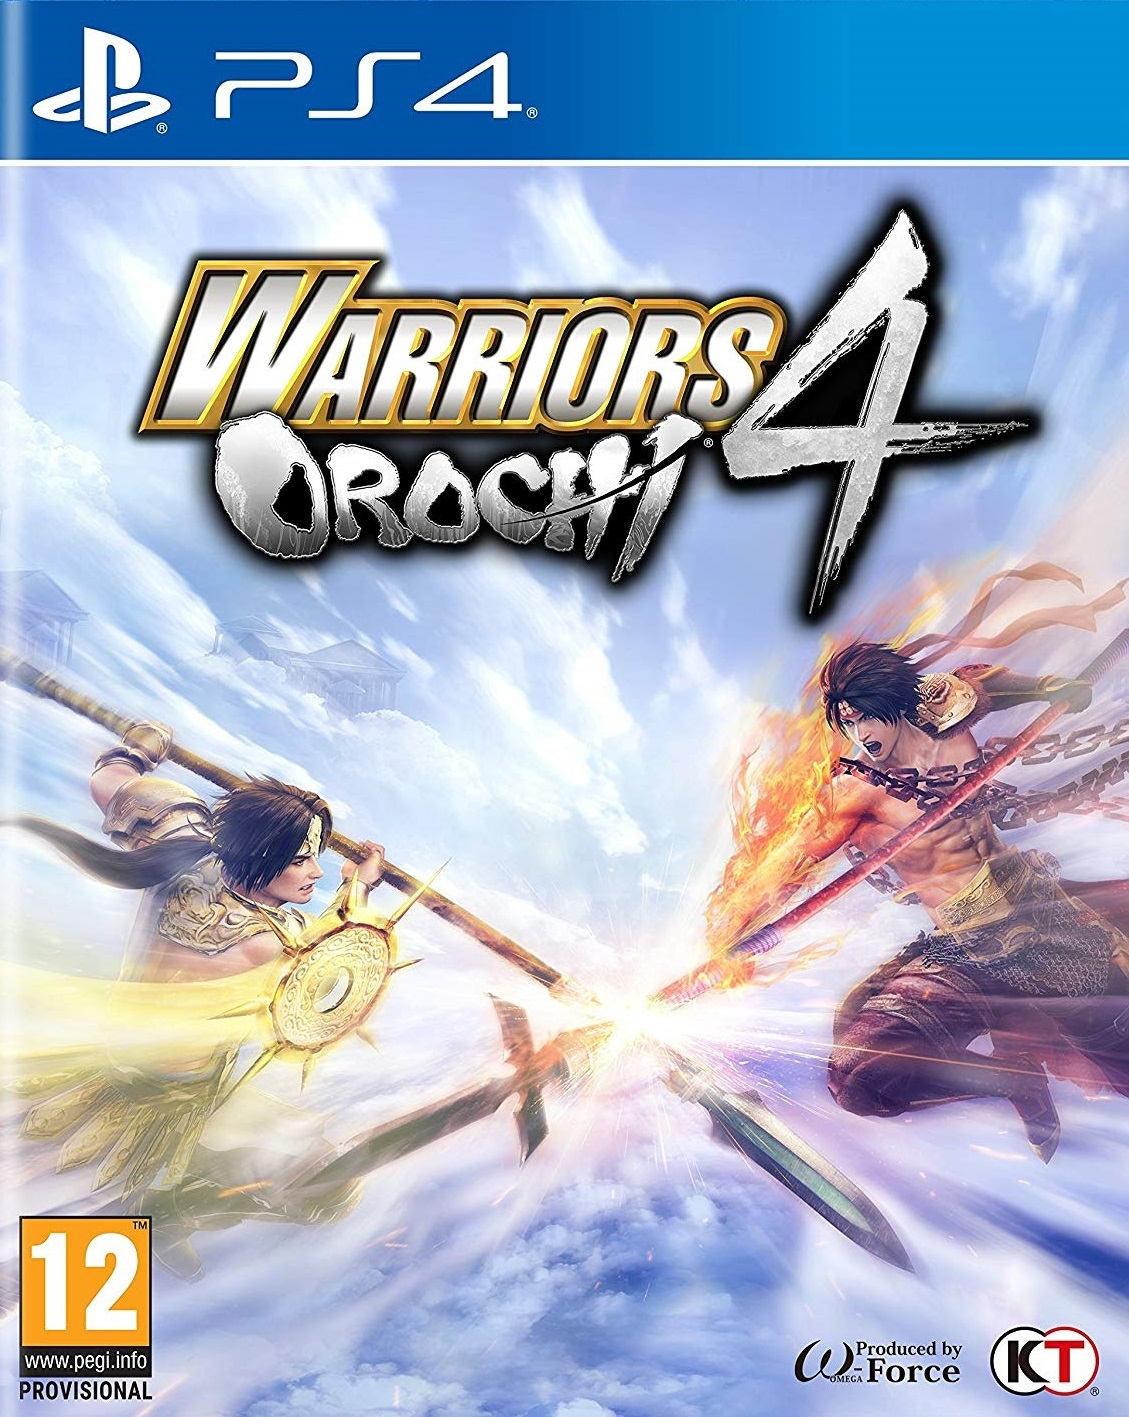 Warriors Orochi 4 for PS4 image